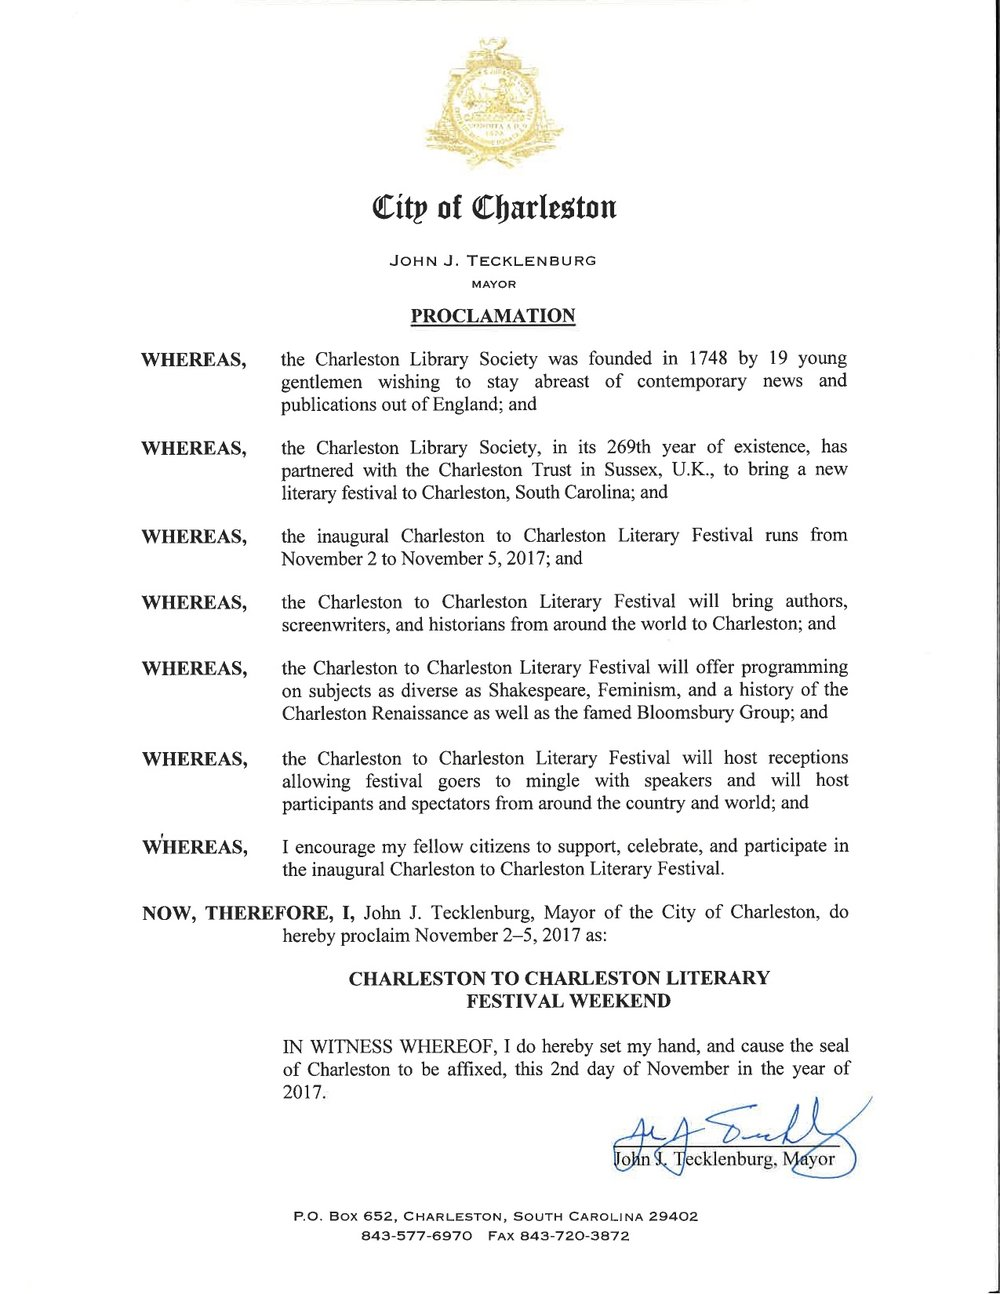 C2C Mayoral Proclamation.jpg